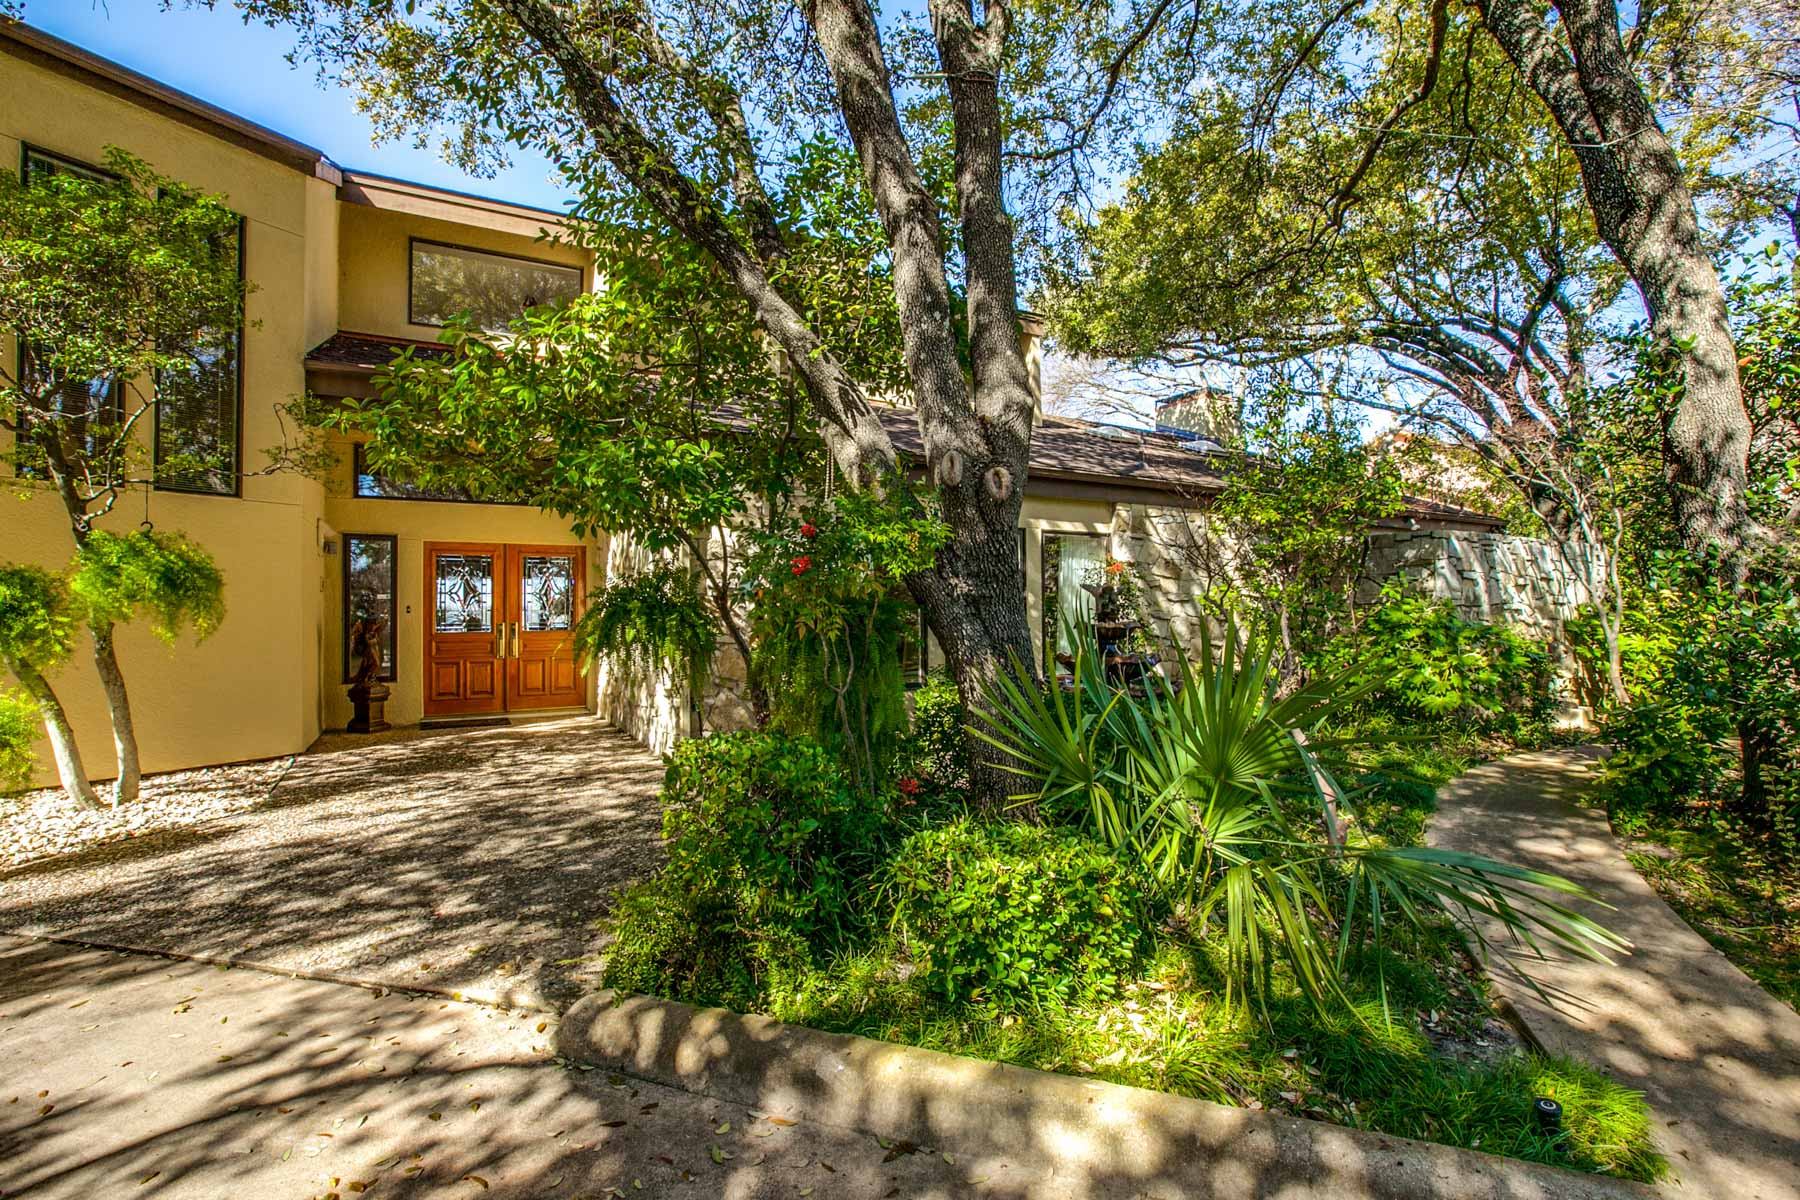 Single Family Home for Sale at Secluded Drive Leads to Wonderful 220 ft. of Waterfront Property 7945 Summit Cove Fort Worth, Texas 76179 United States